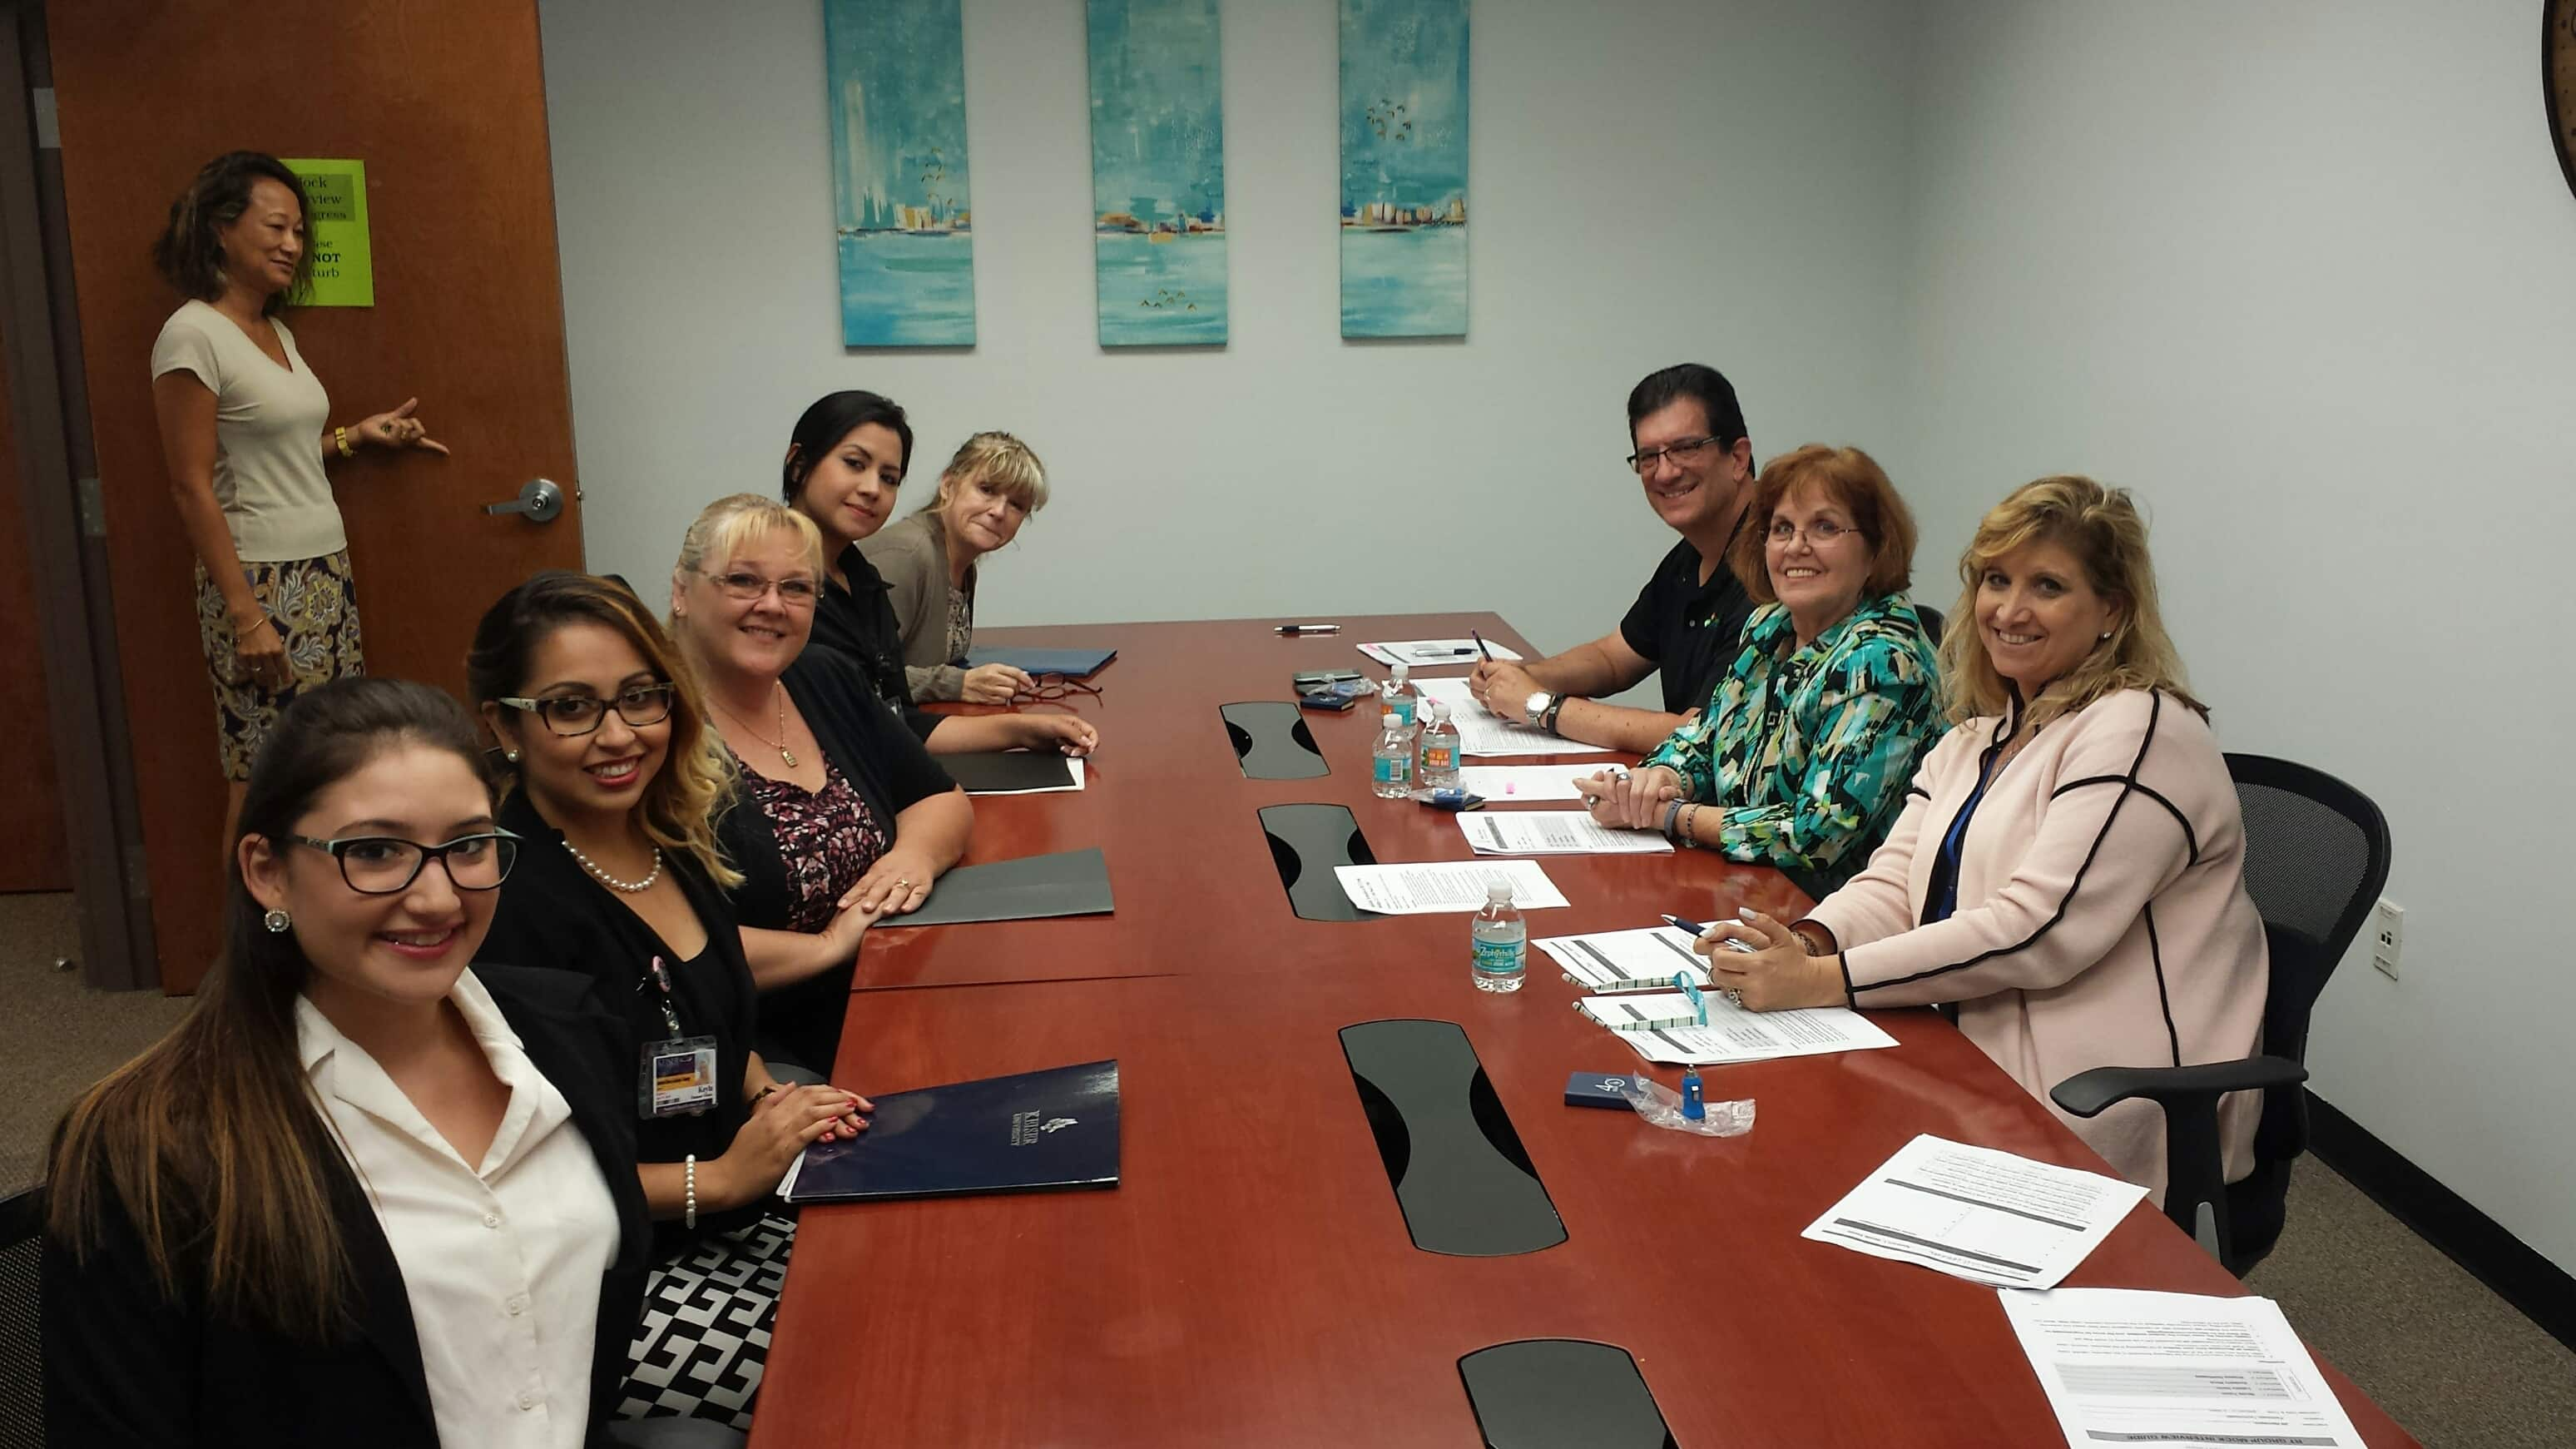 The West Palm Beach Campus Hosts Mock Interviews